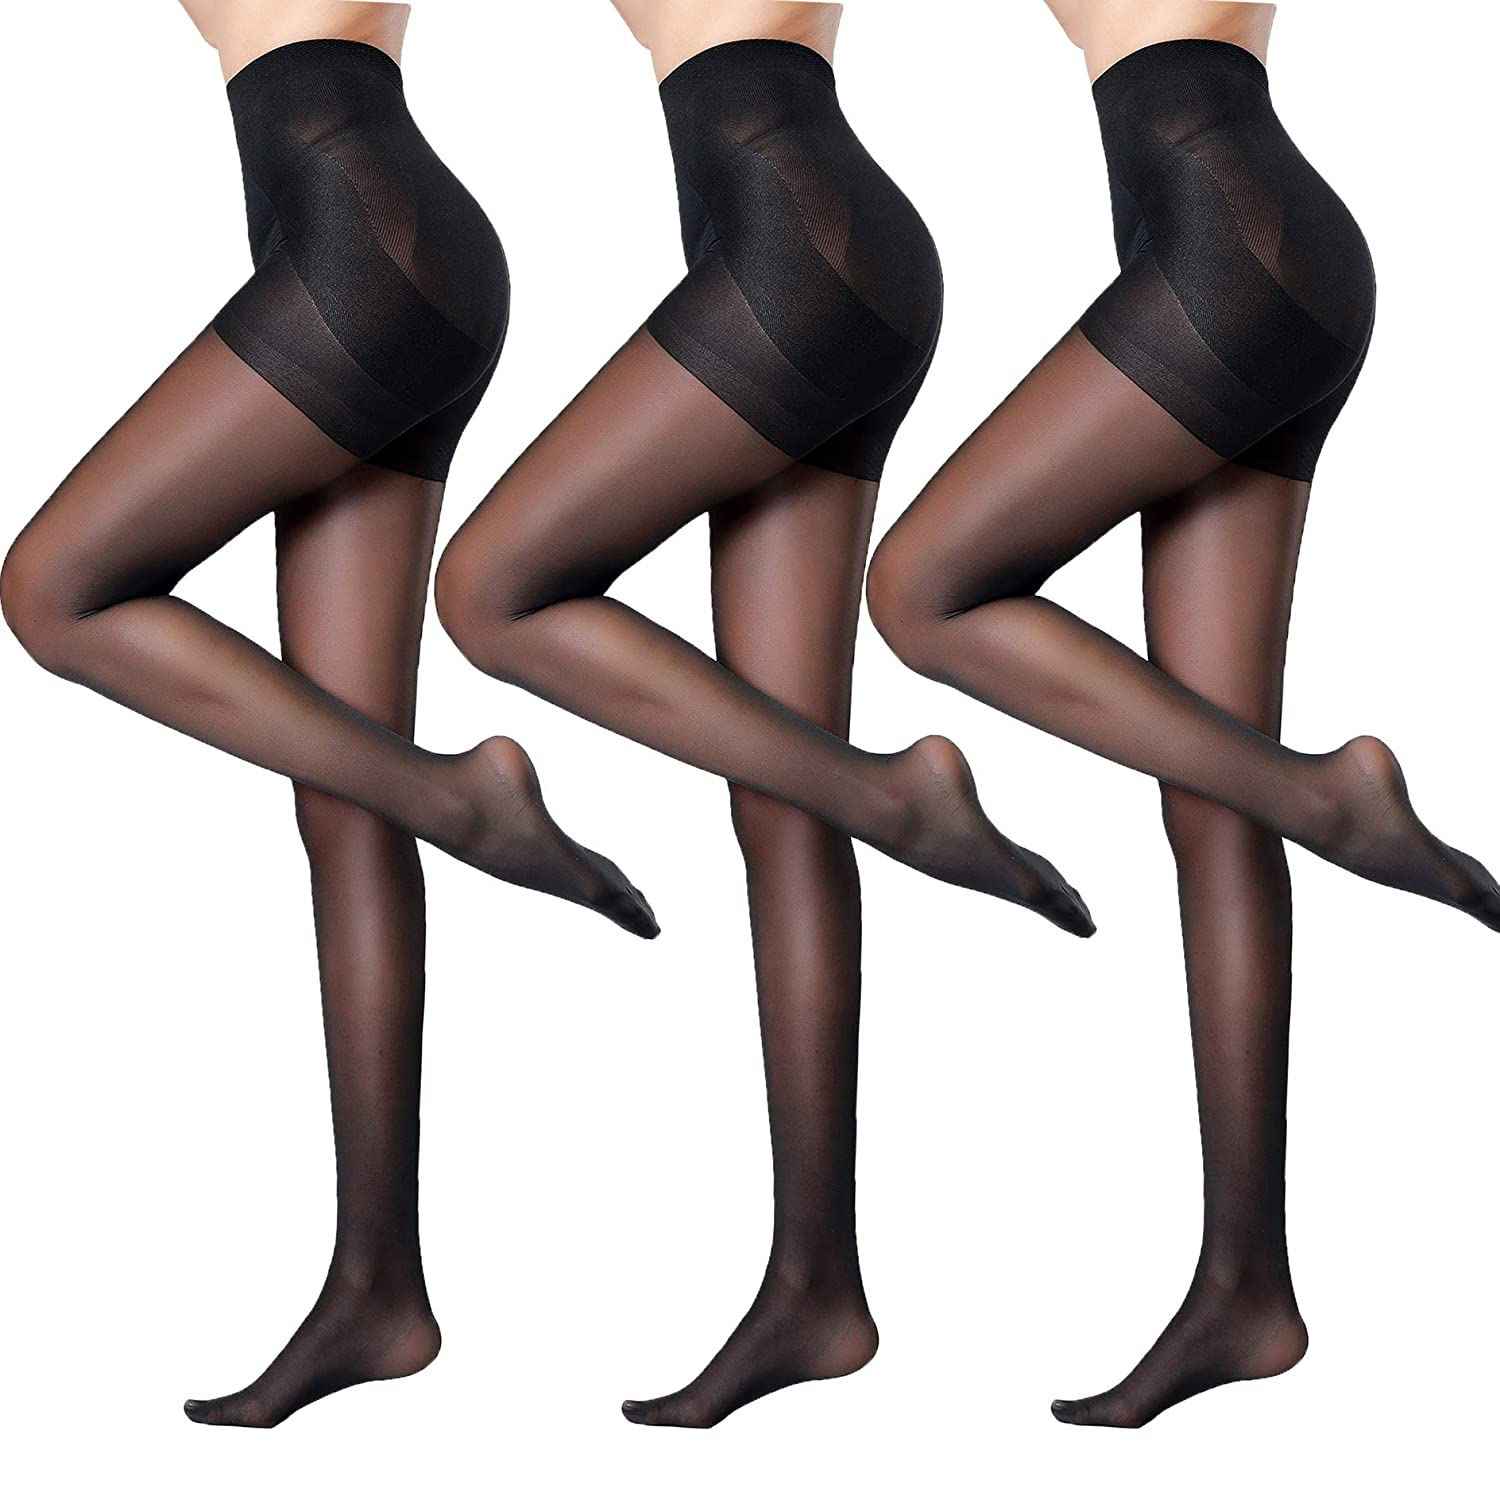 Black,3 Pairs Pantie Credch PantyhoseWomen's Semi Sheer Control Top Back Seam & T Credch Tights Pack of 3